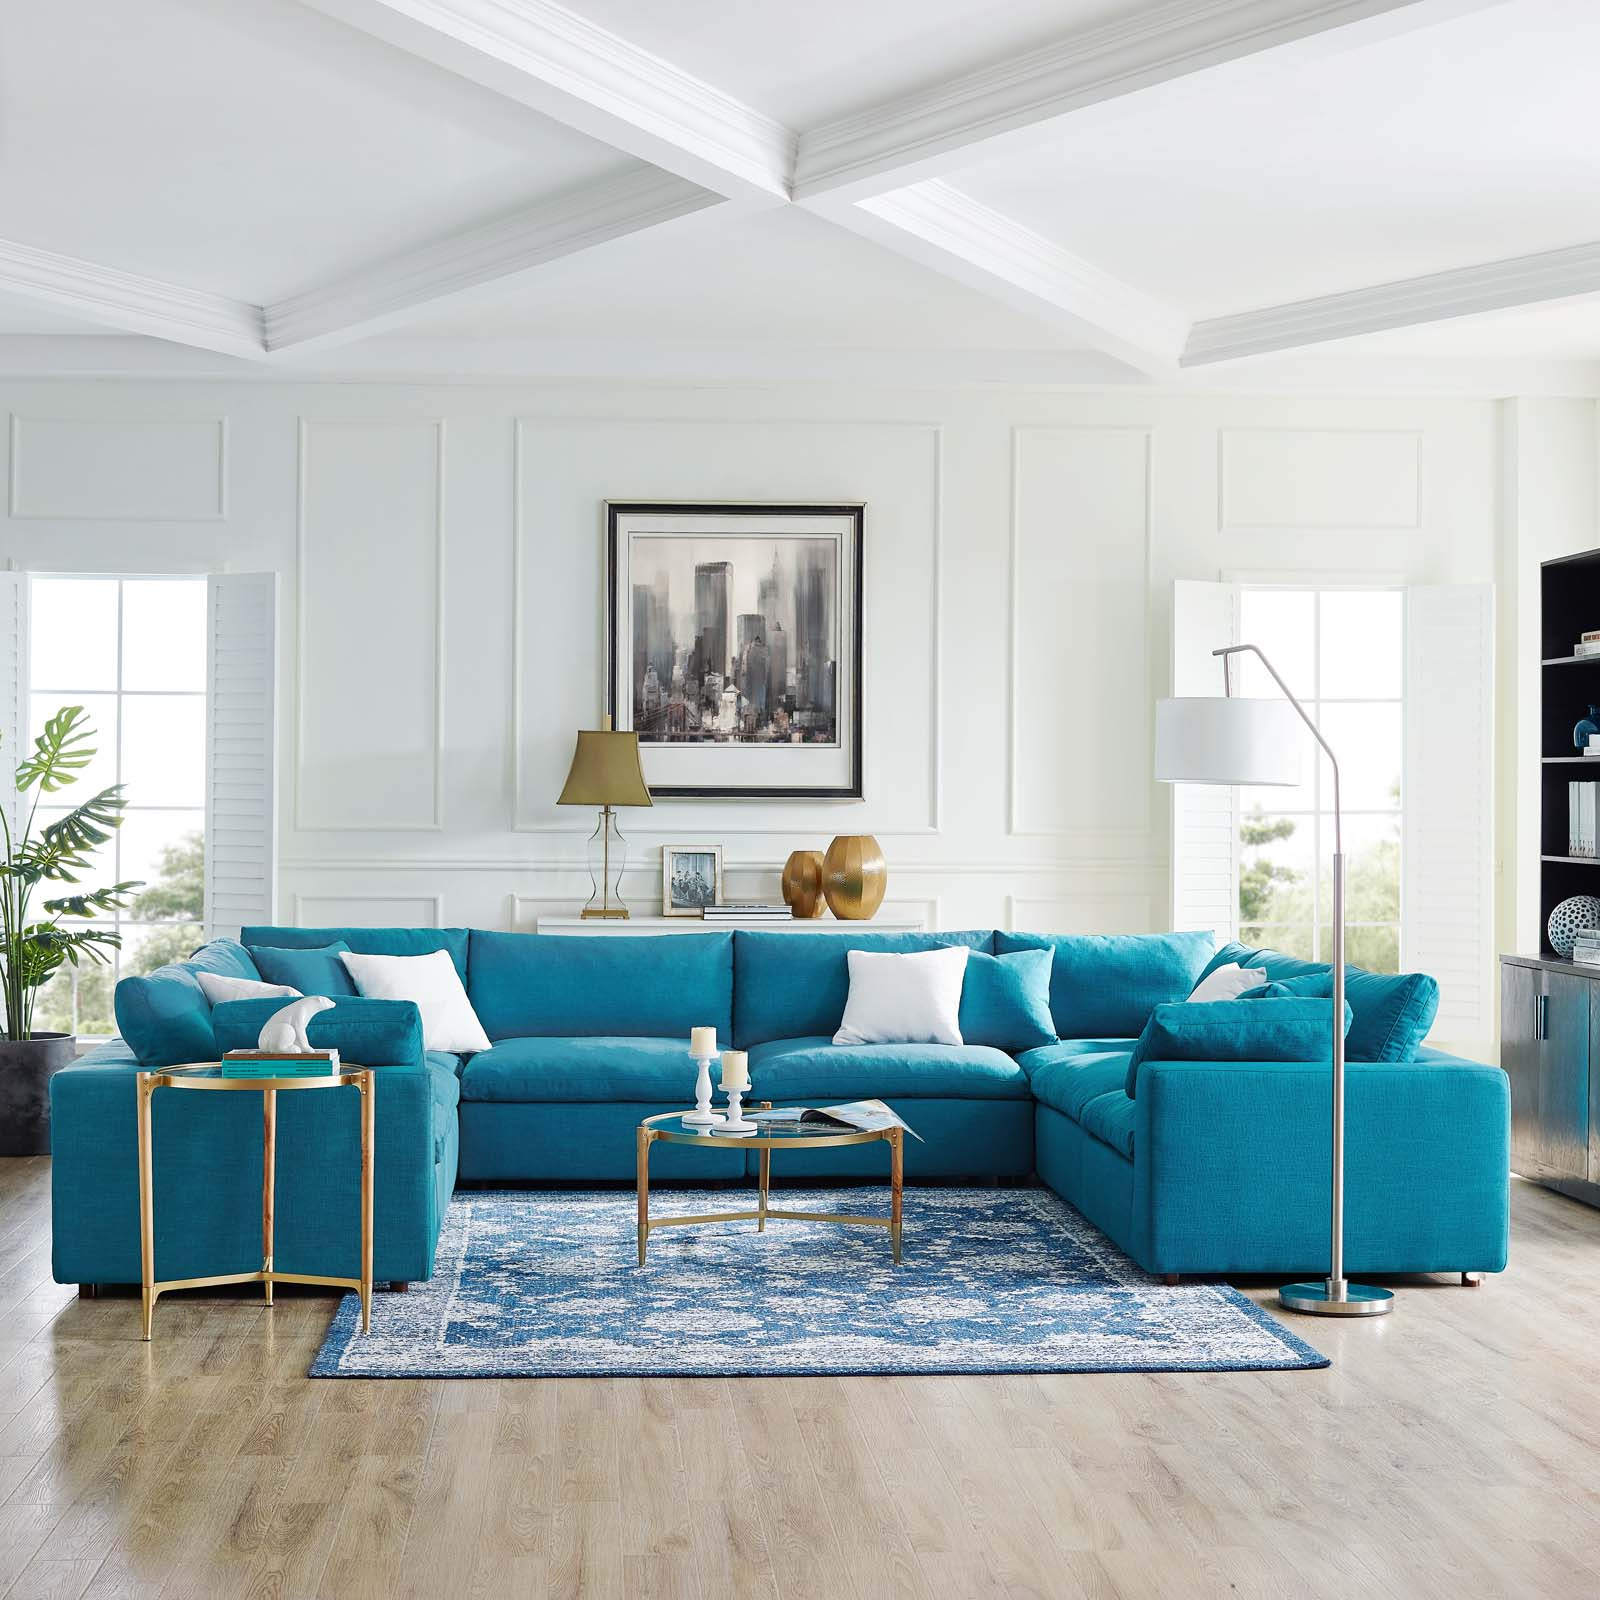 commix down filled overstuffed 8 piece sectional sofa set in teal walmart com